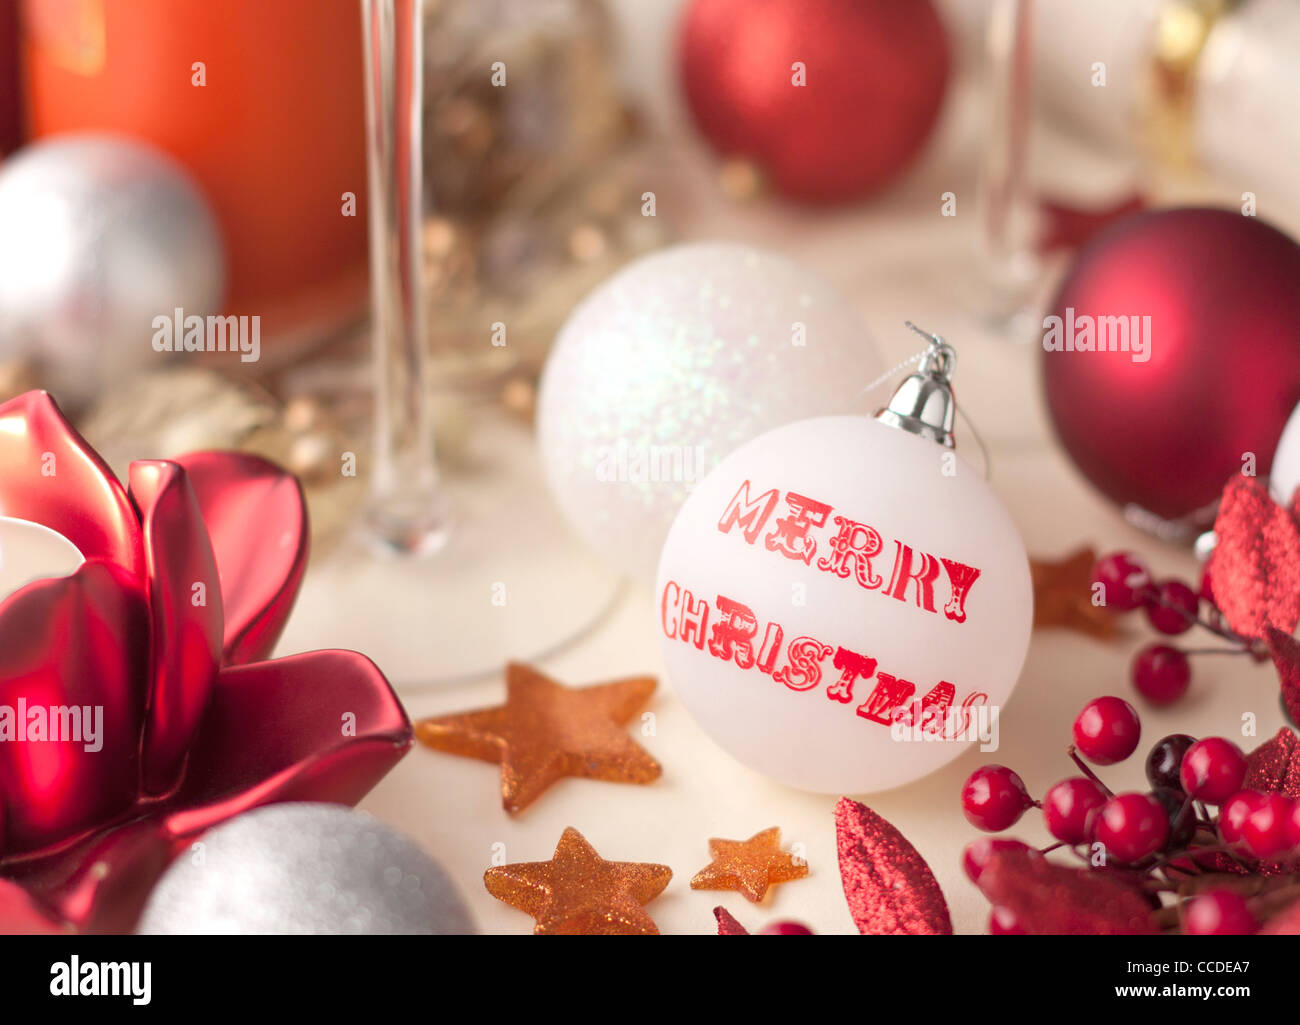 Christmas Table Decorated With Baubles And Festive Props In Red